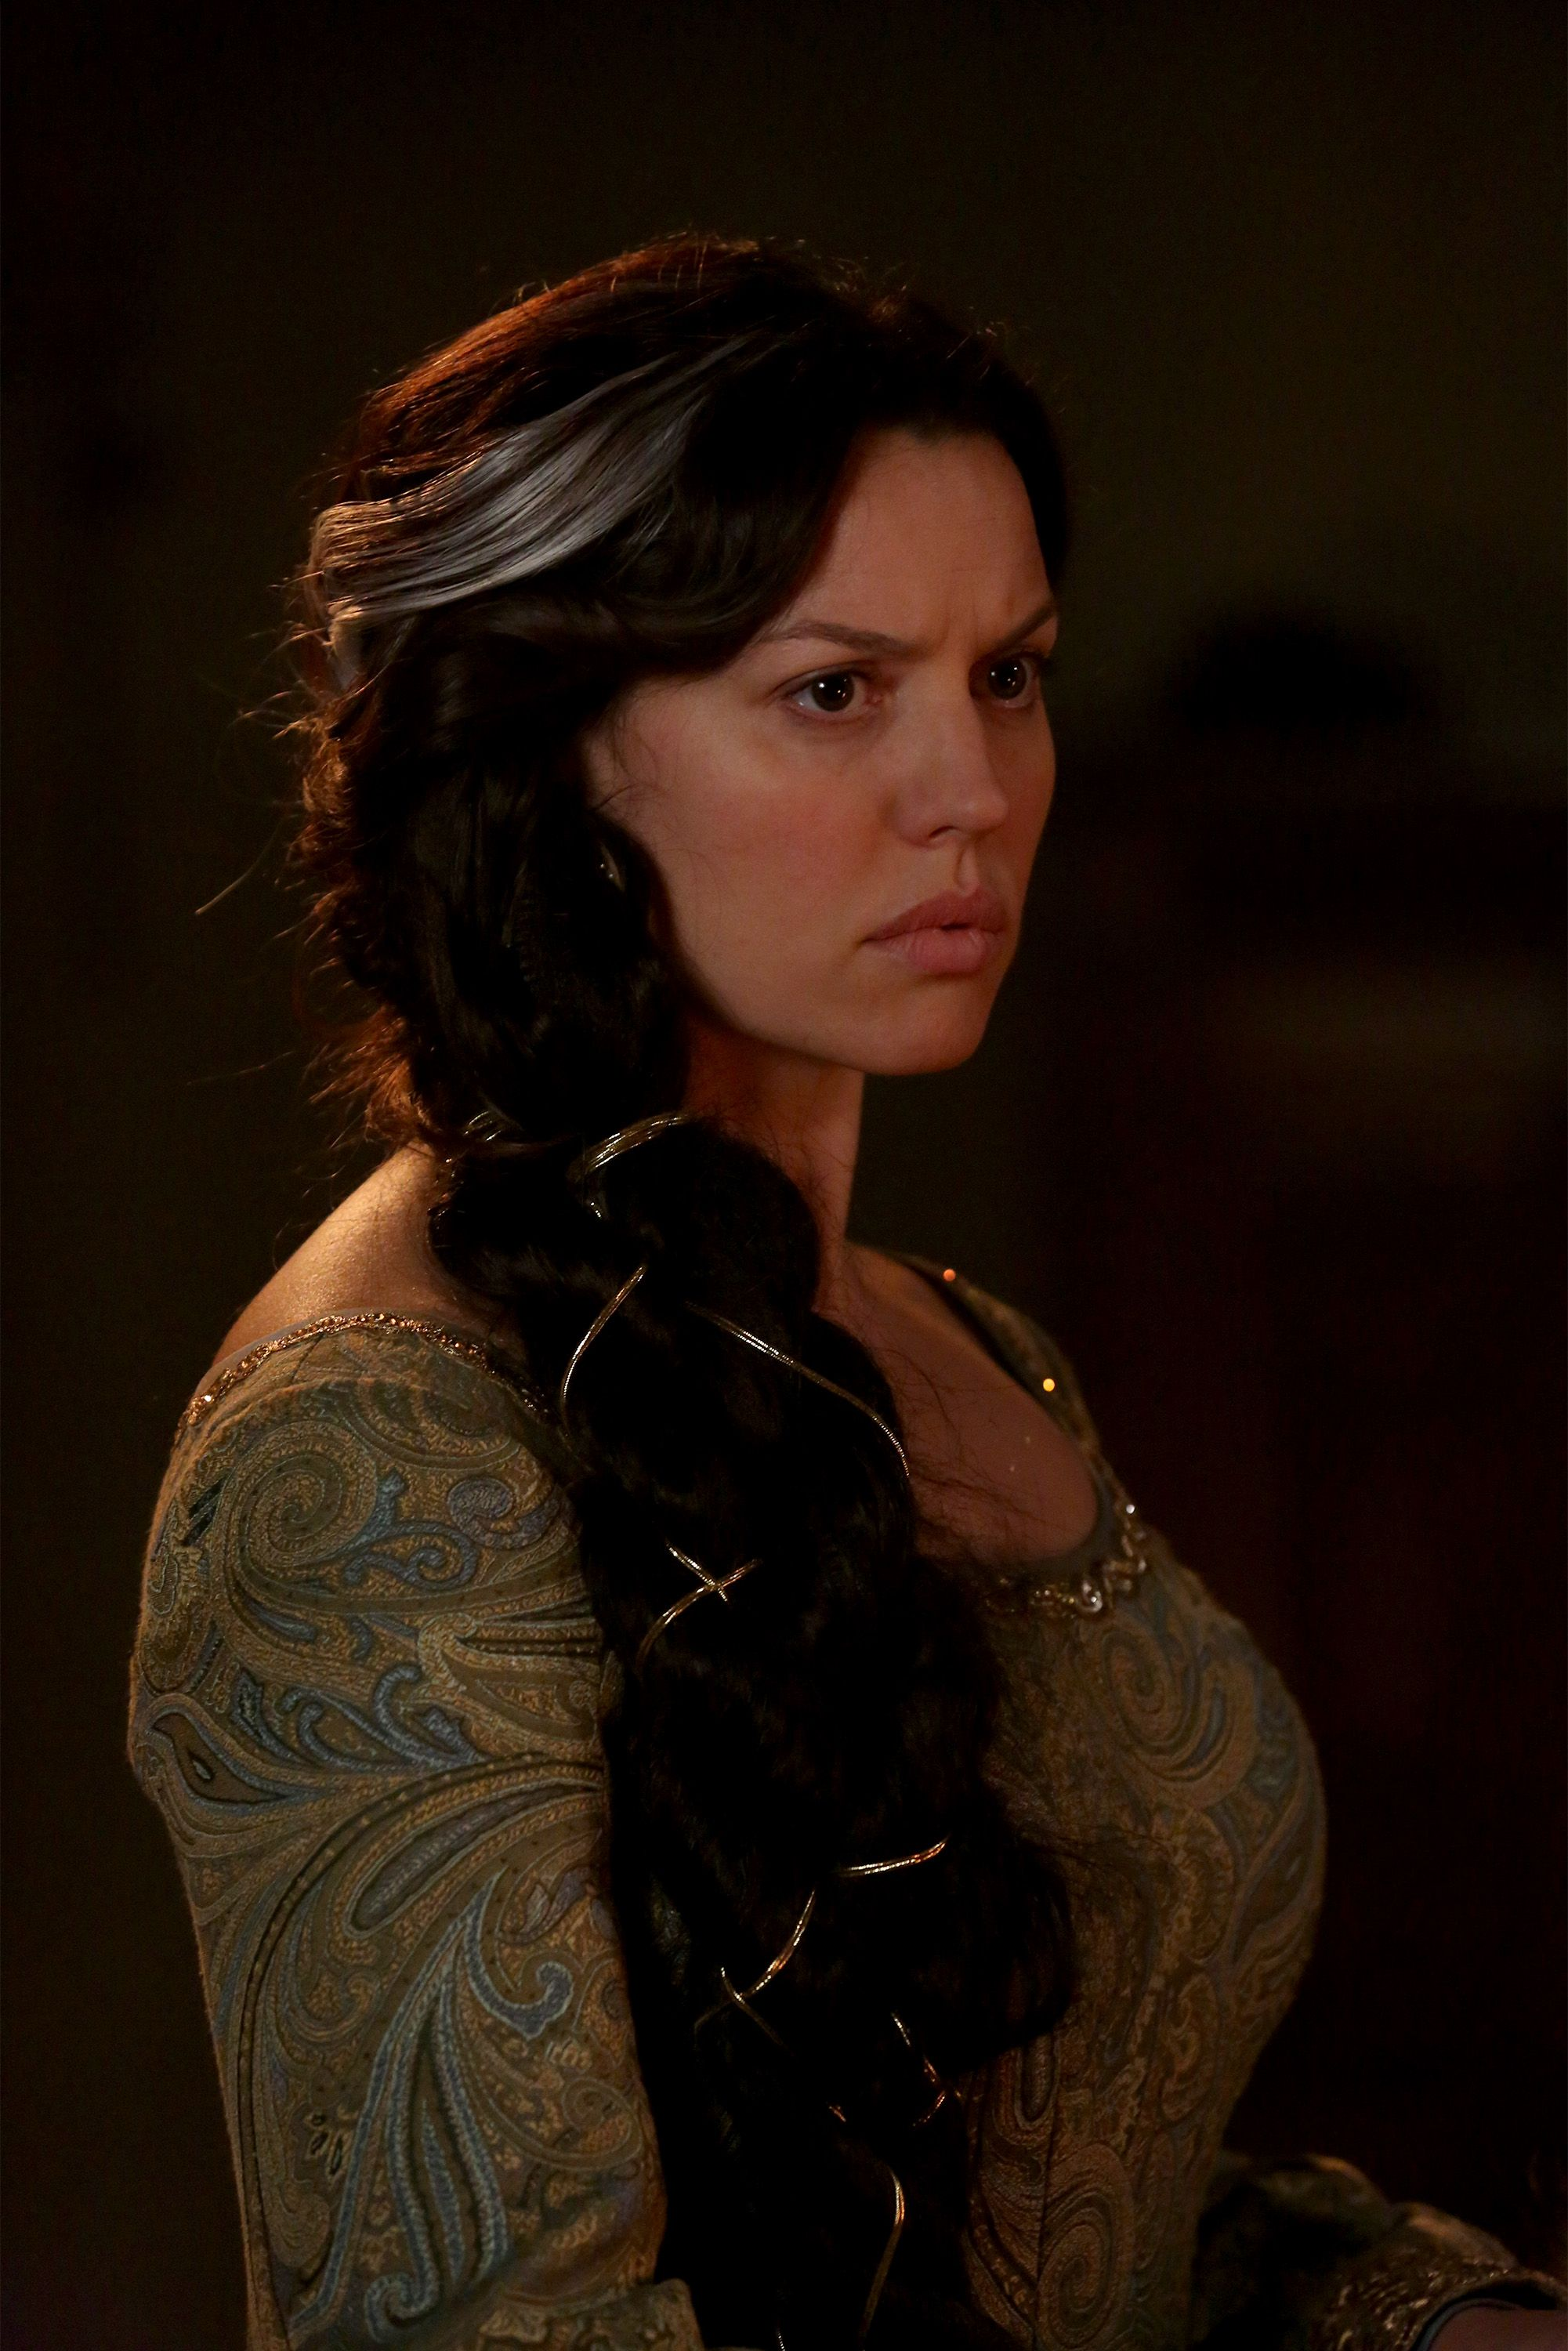 Queen elinor once upon a time thought she was callie sara ramirez from grey s anatomy for while queen elinor is caroline morahan